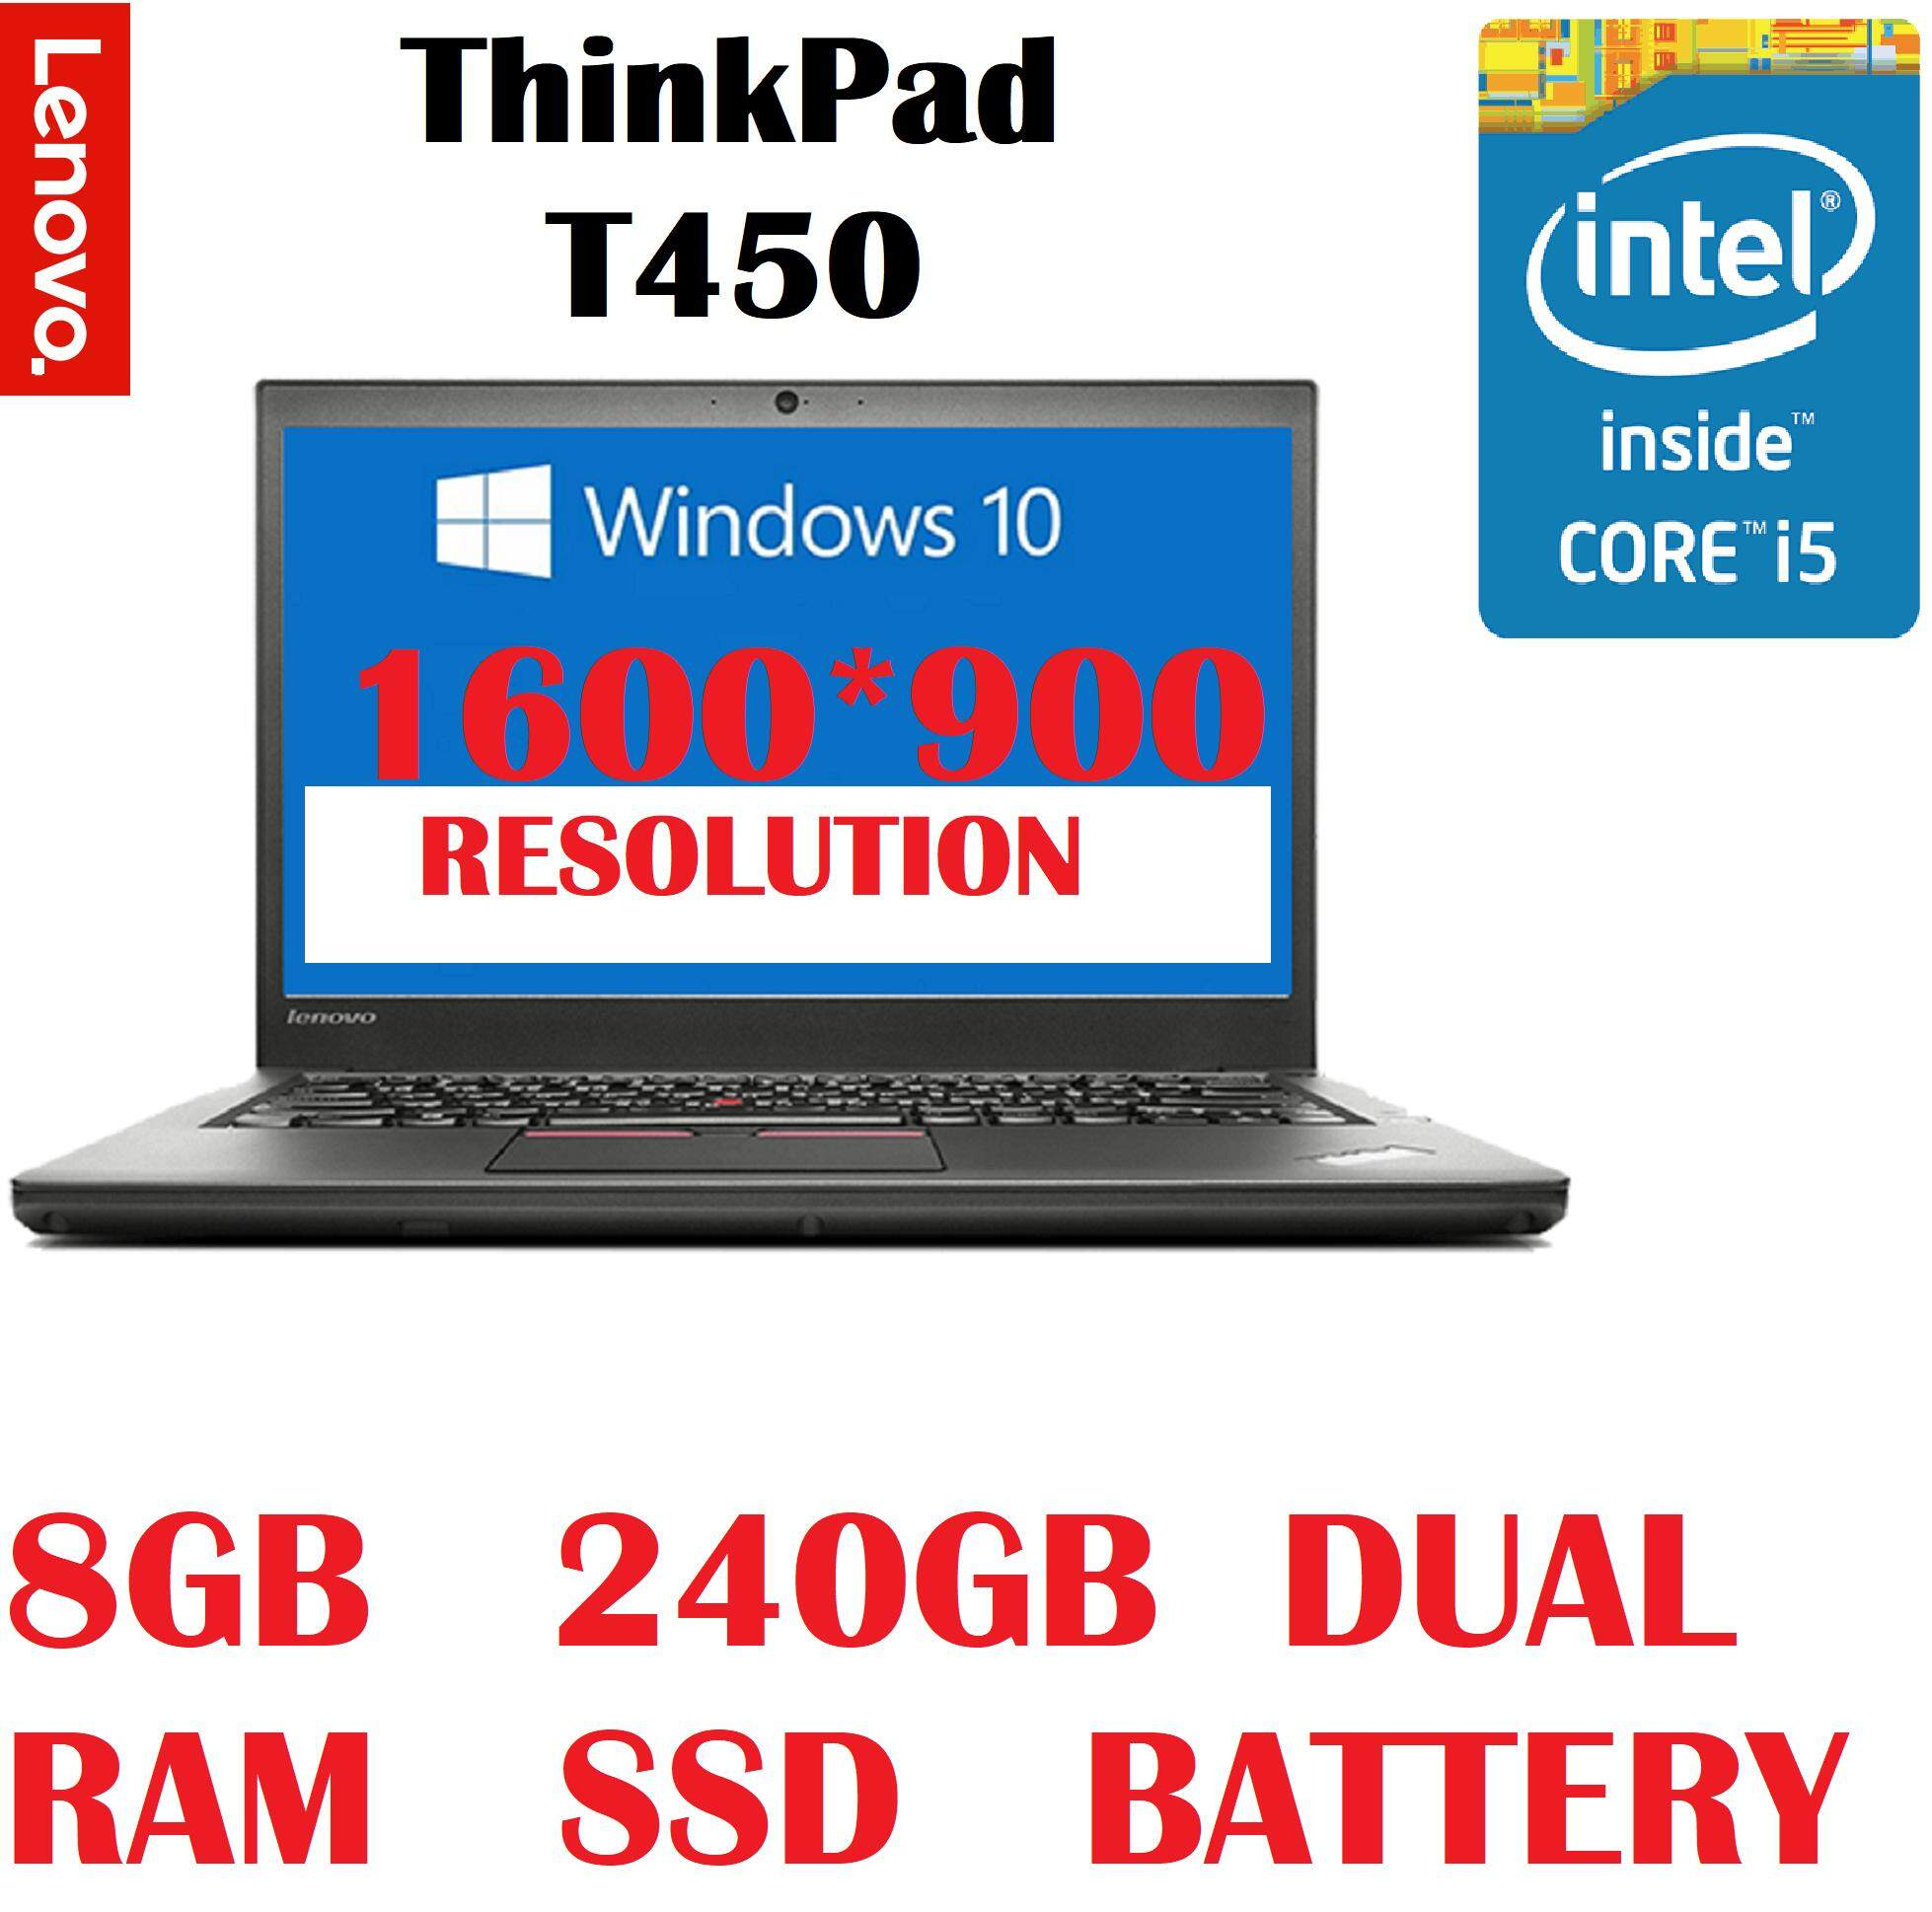 Refurbished Lenovo ThinkPad T450 INTEL CORE i5-5300U 2 3GHZ 5TH GEN CPU/8GB  DDR3 RAM/240GB SSD/14